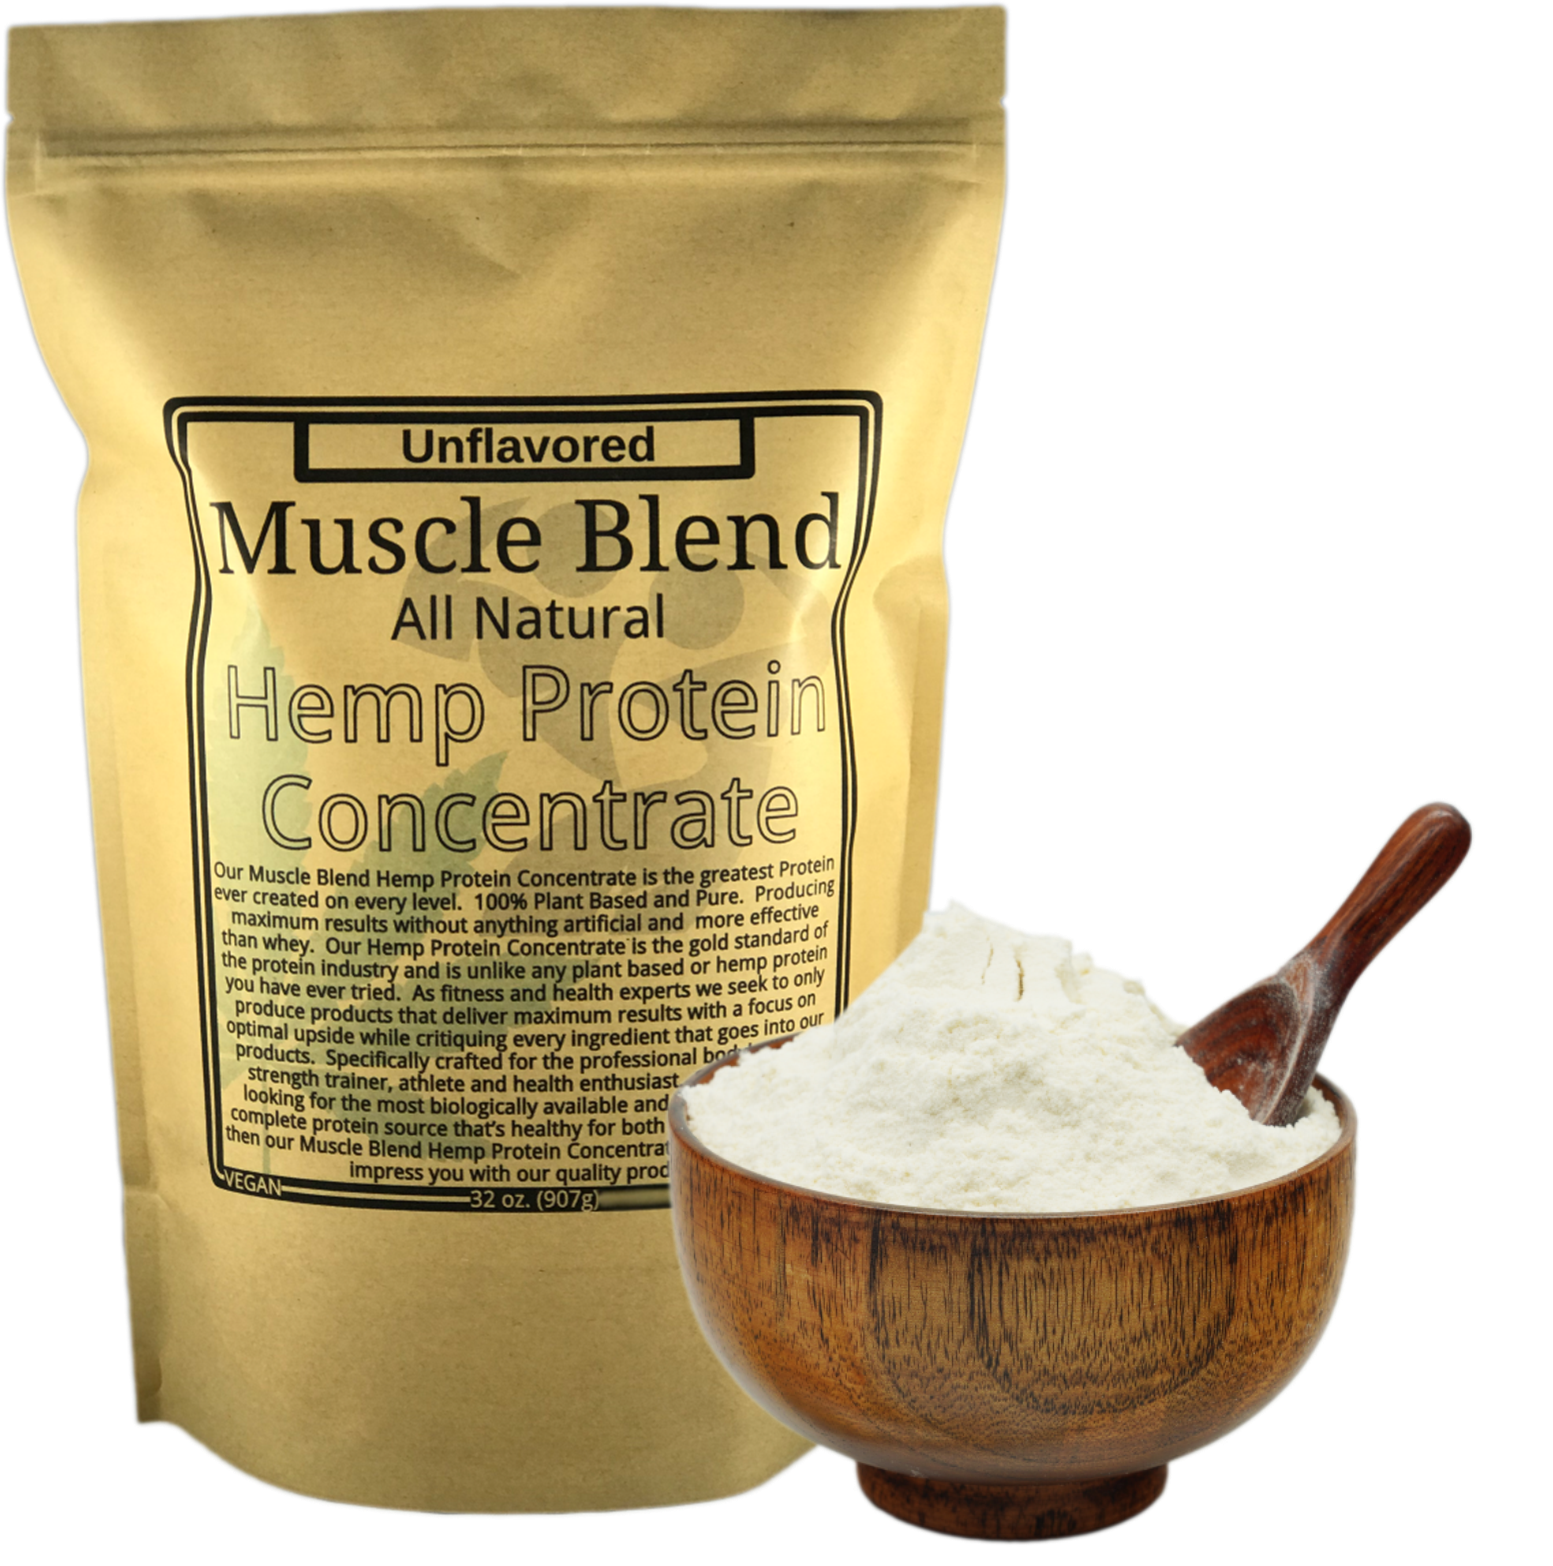 Muscle Blend Hemp Protein Concentrate 32 oz Zipper Pouch, All Natural, Vegan